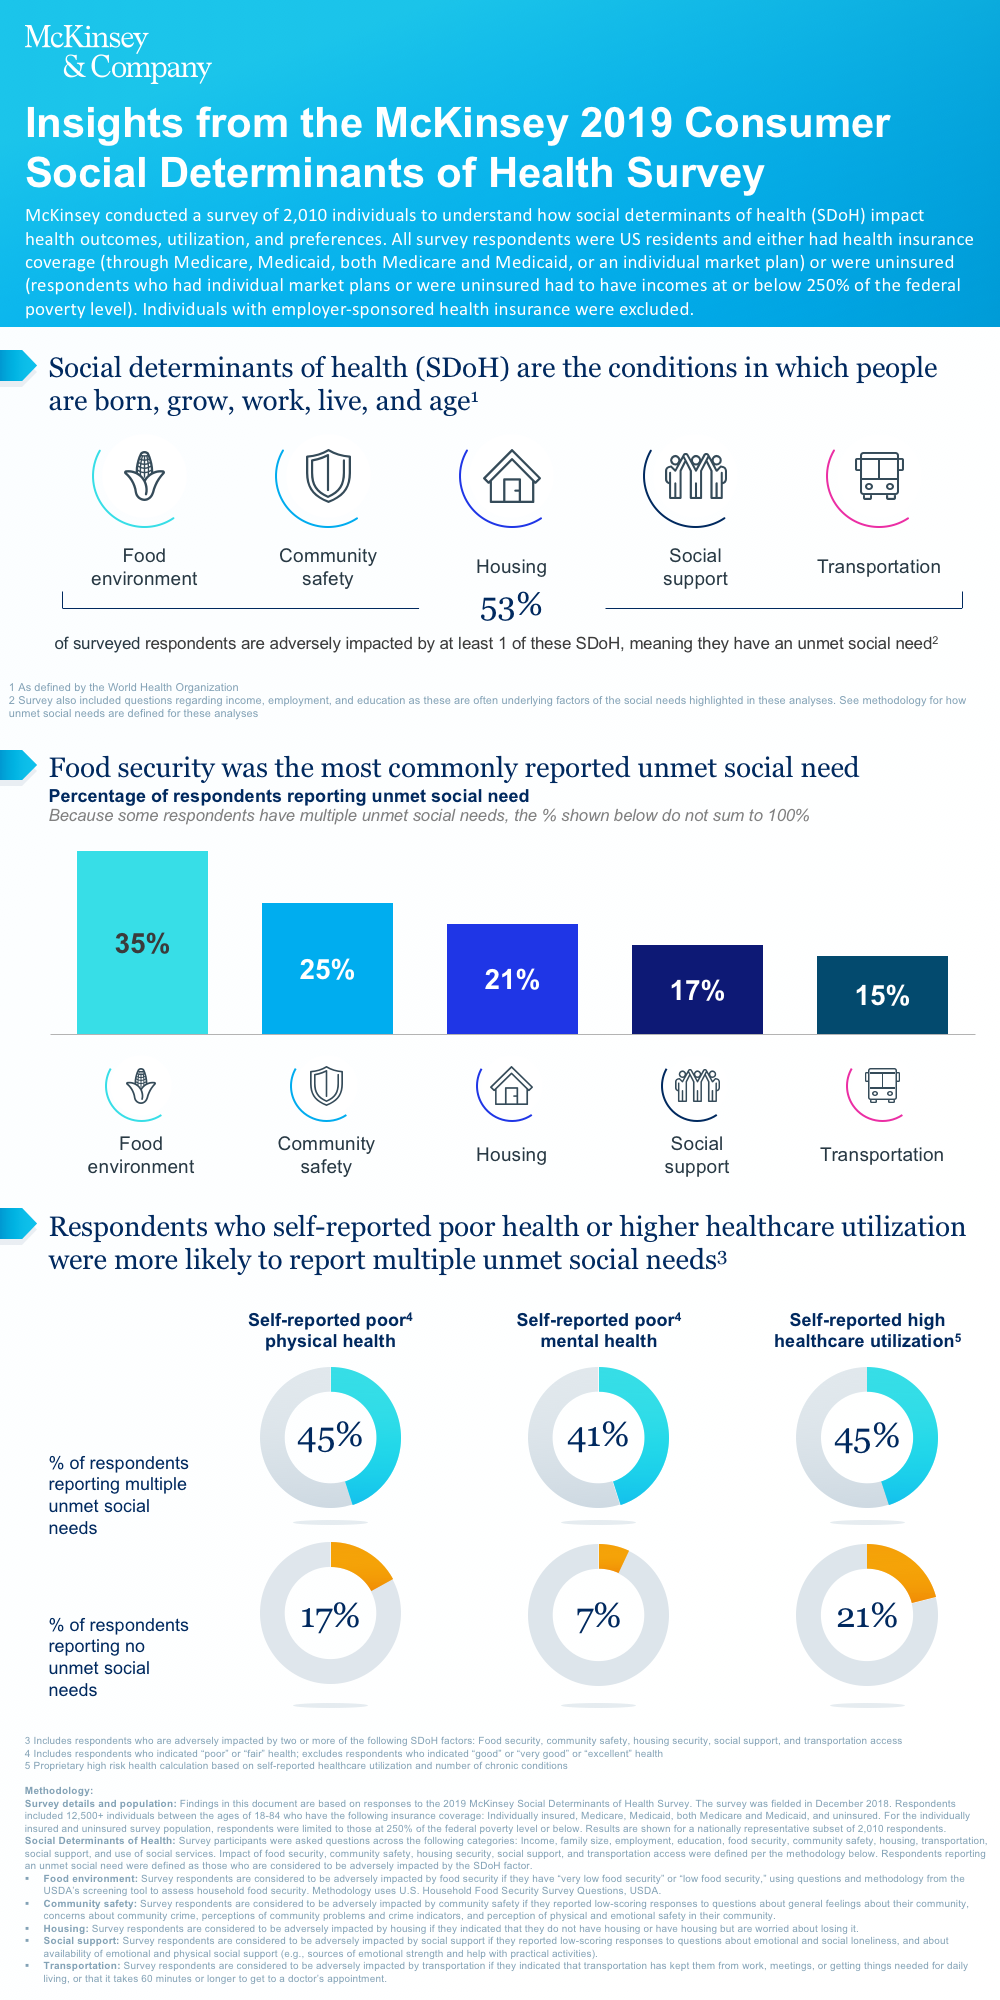 Insights from the McKinsey 2019 Social Determinants of Health Survey